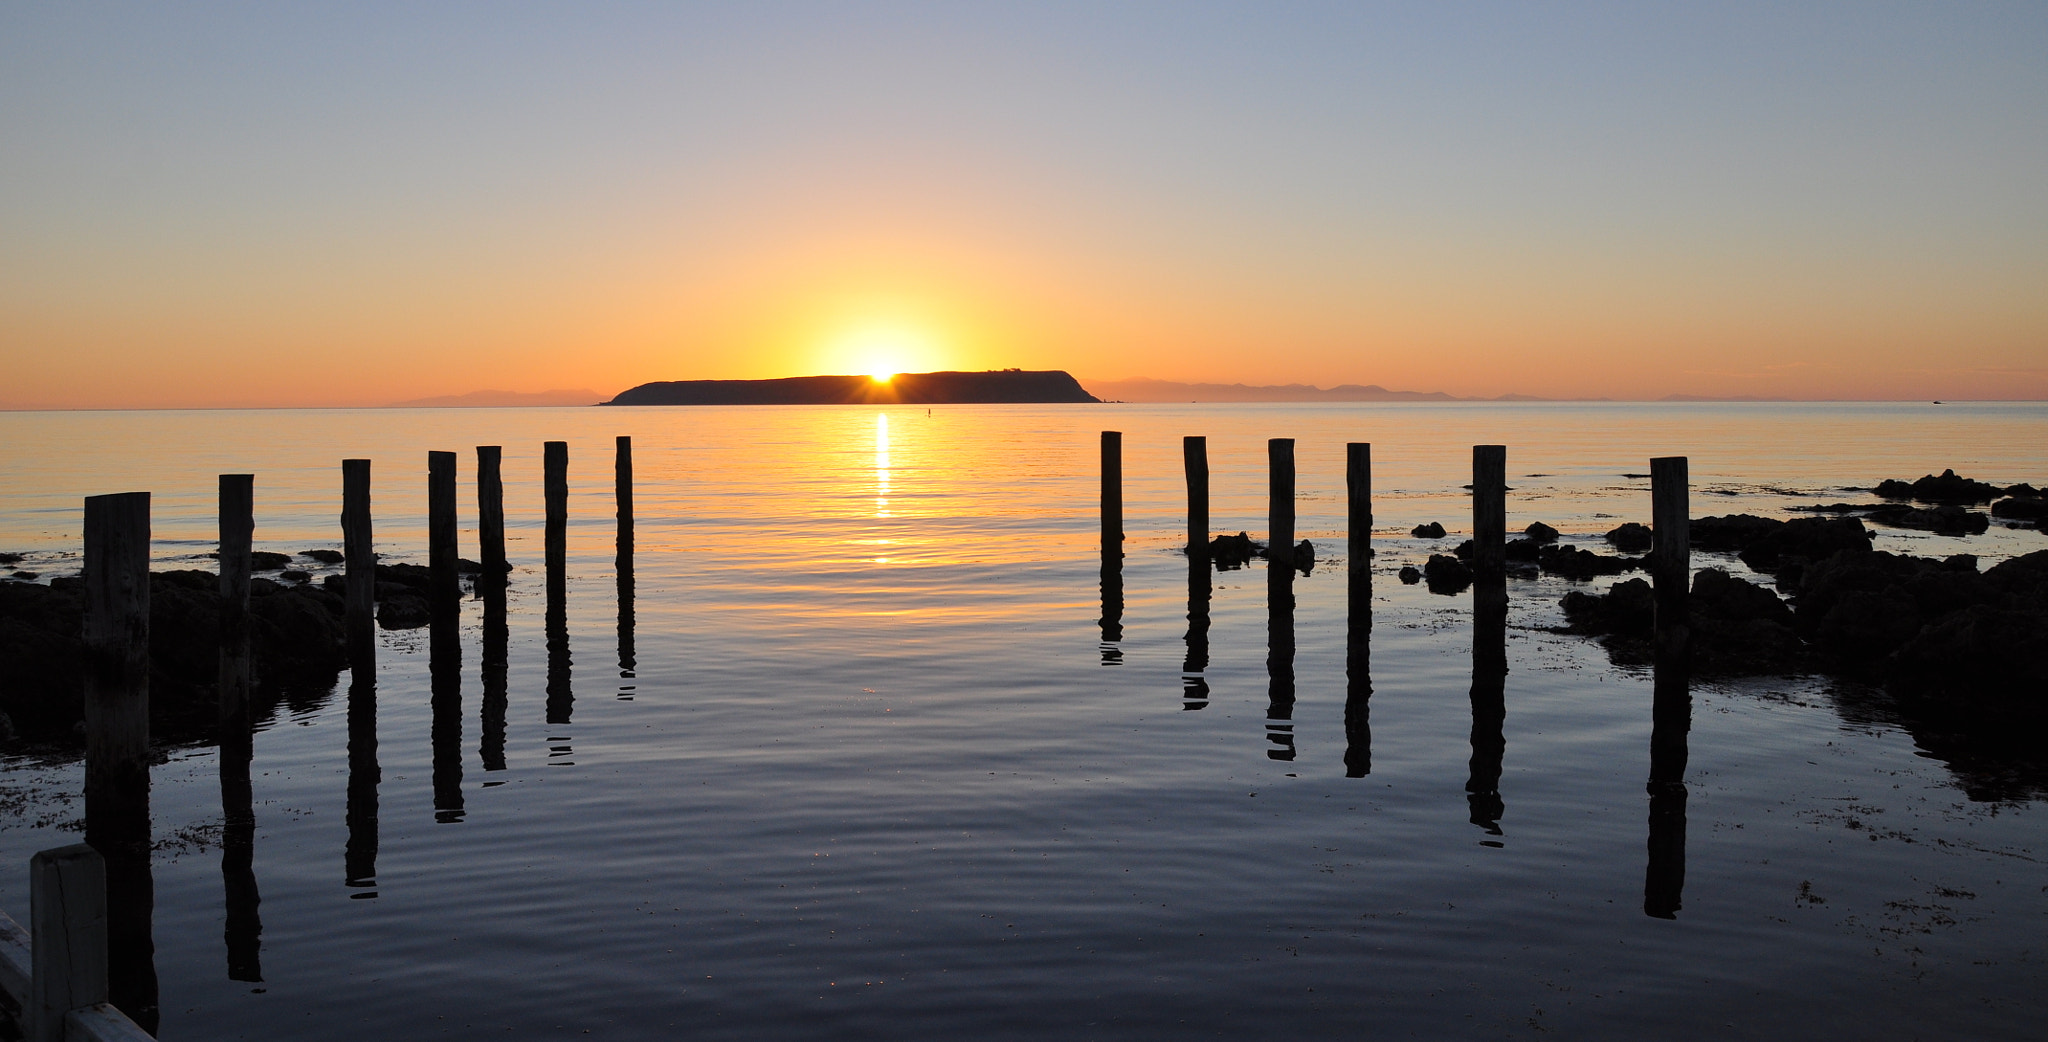 Photograph Sunset at Plimmerton by Kim Anh Mumford on 500px